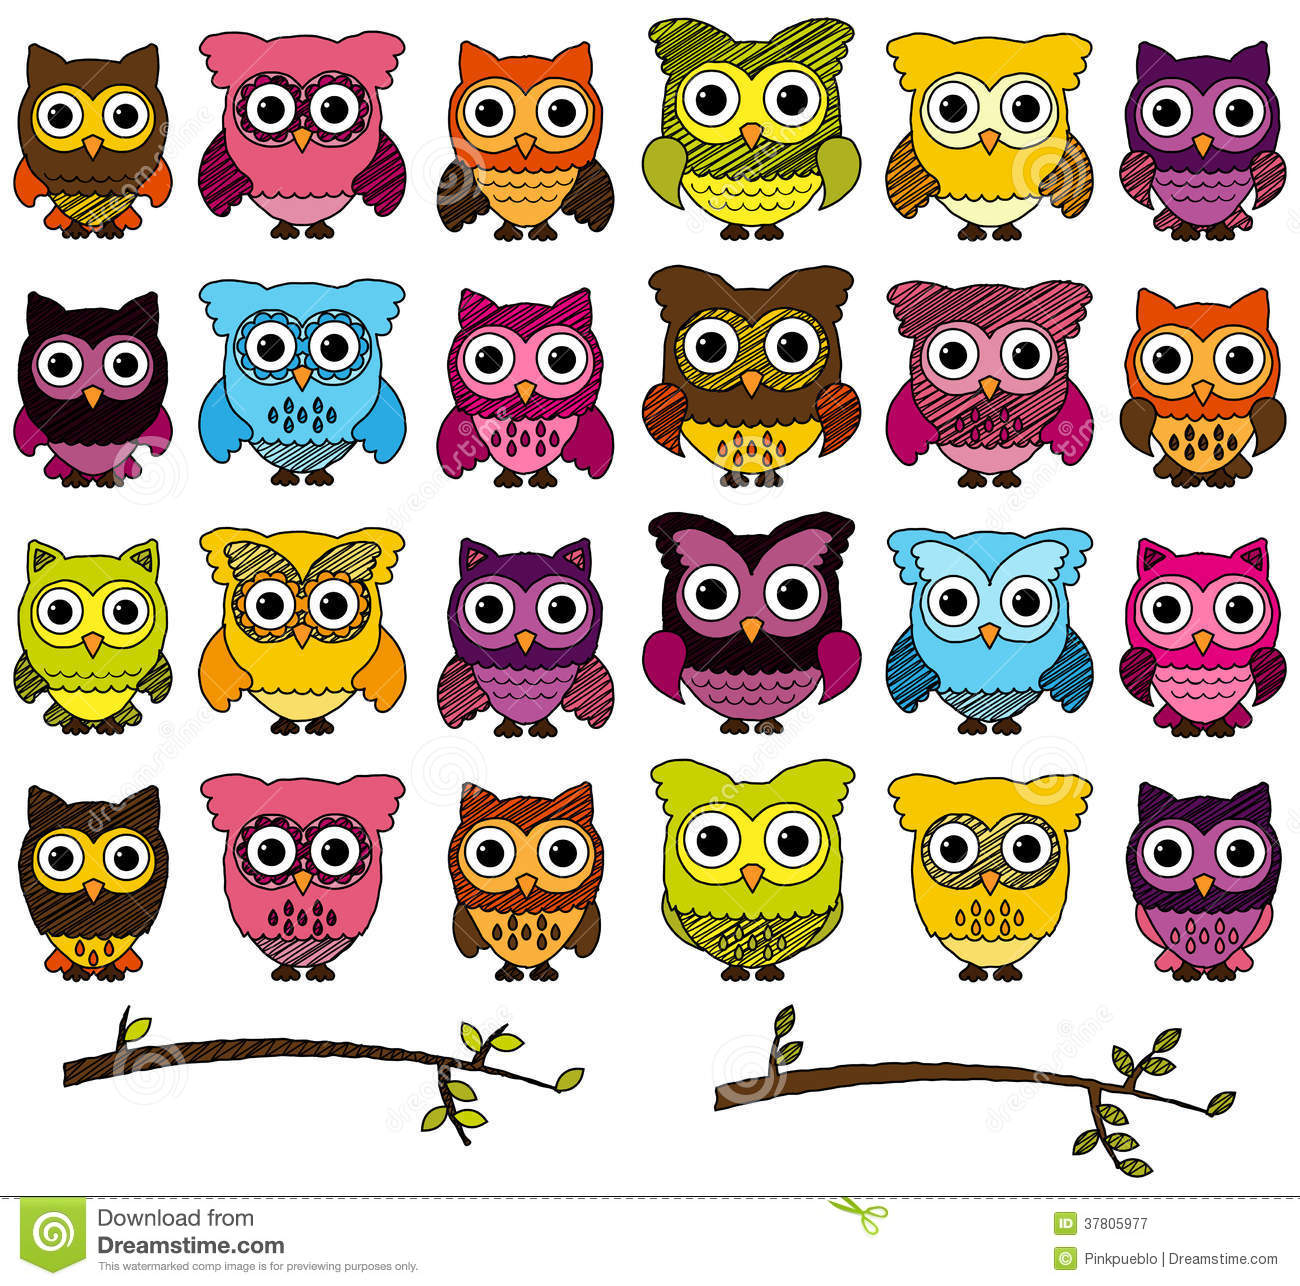 Doodle Style Vector Set Of Cute Owls Royalty Free Stock